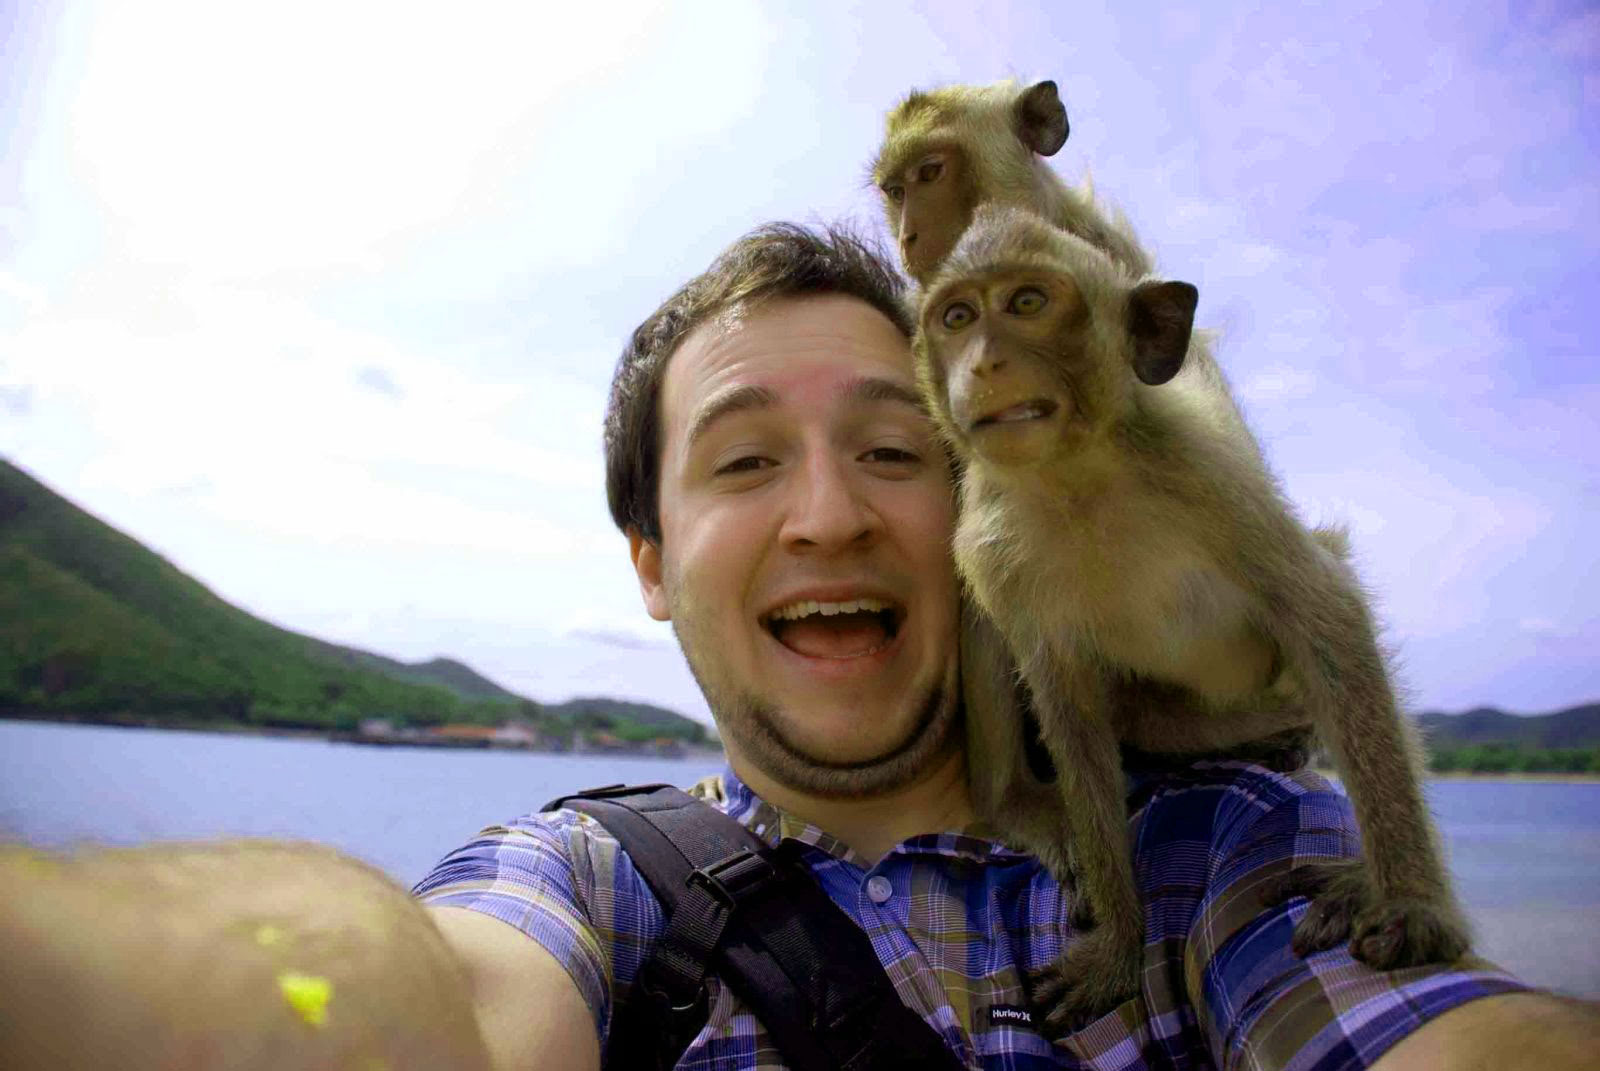 Best funny selfie images Wallpaper Photo Pics Pictures Free HD Download